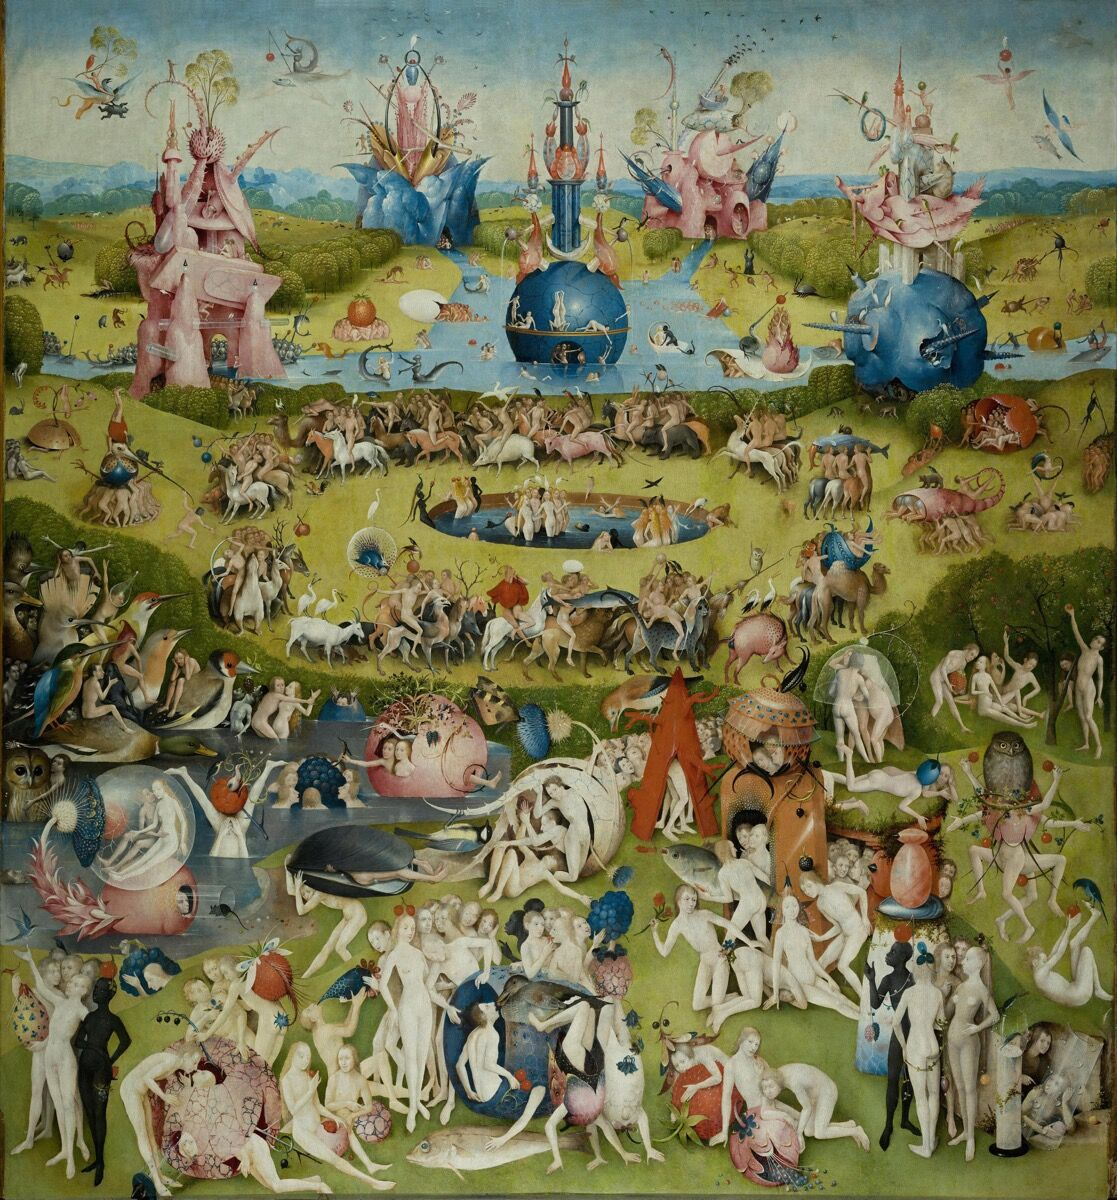 Central panel of Hieronymus Bosch, The Garden of Earthly Delights , 1490-1500. Image via Wikimedia Commons.